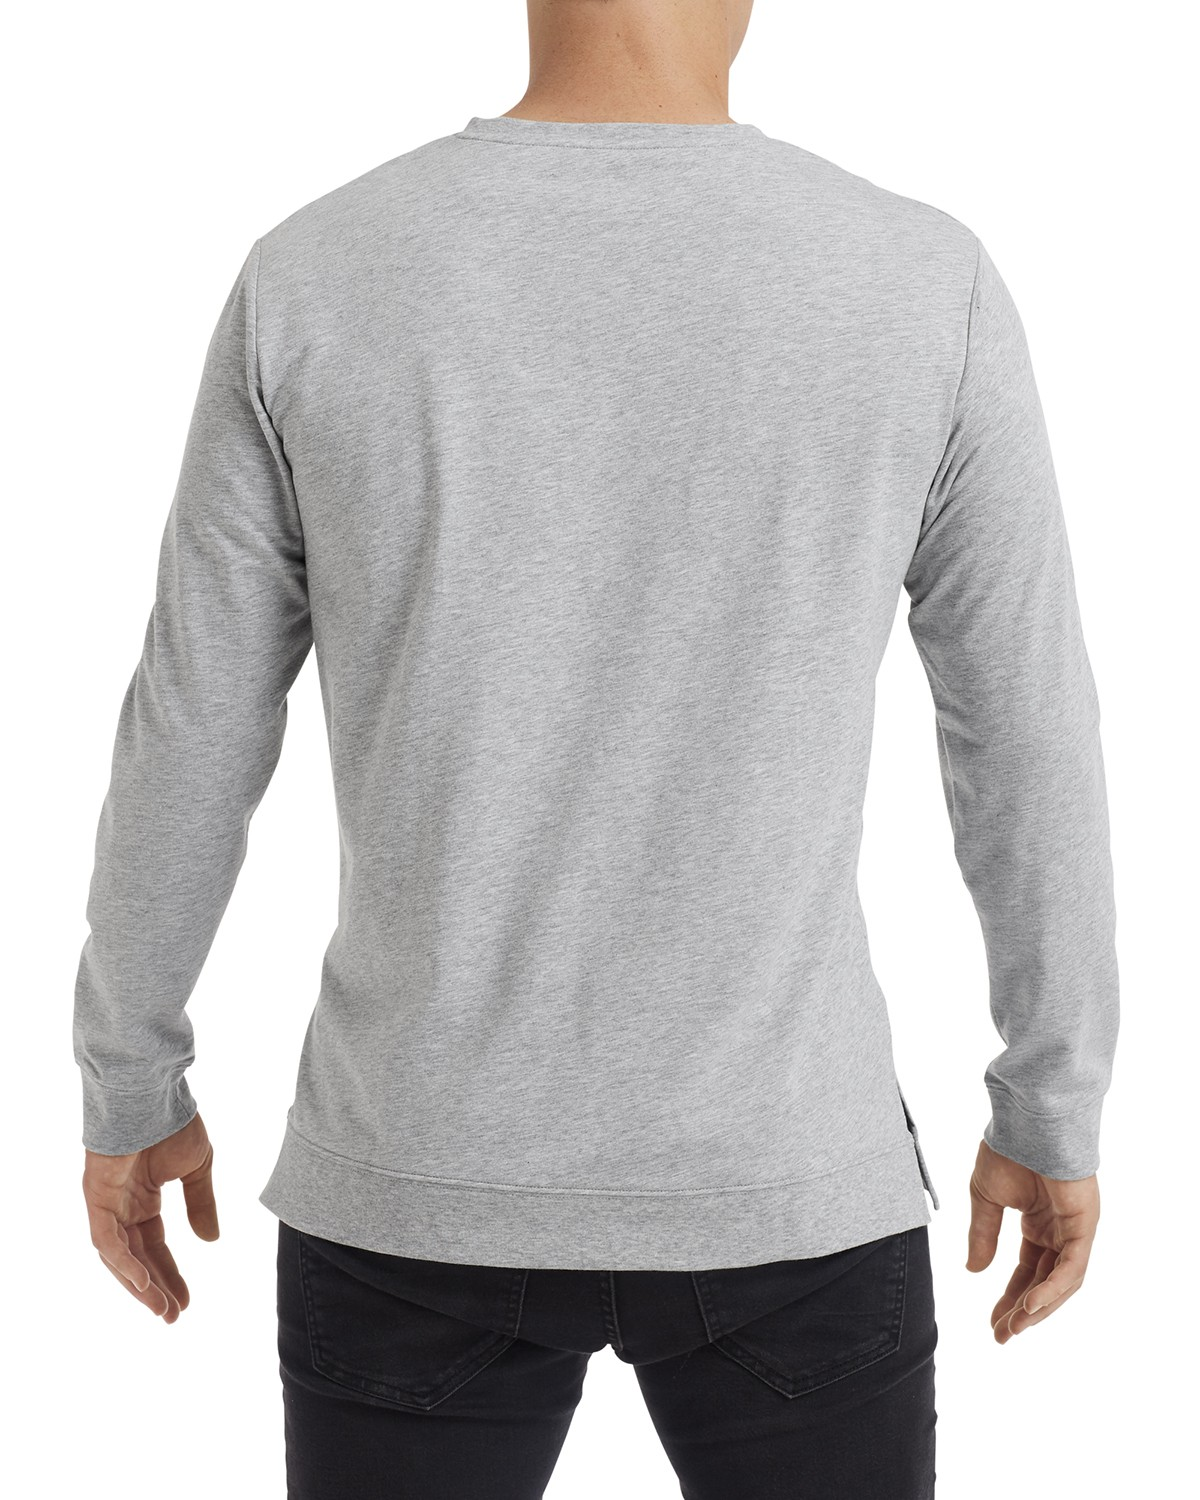 73000 Anvil HEATHER GREY